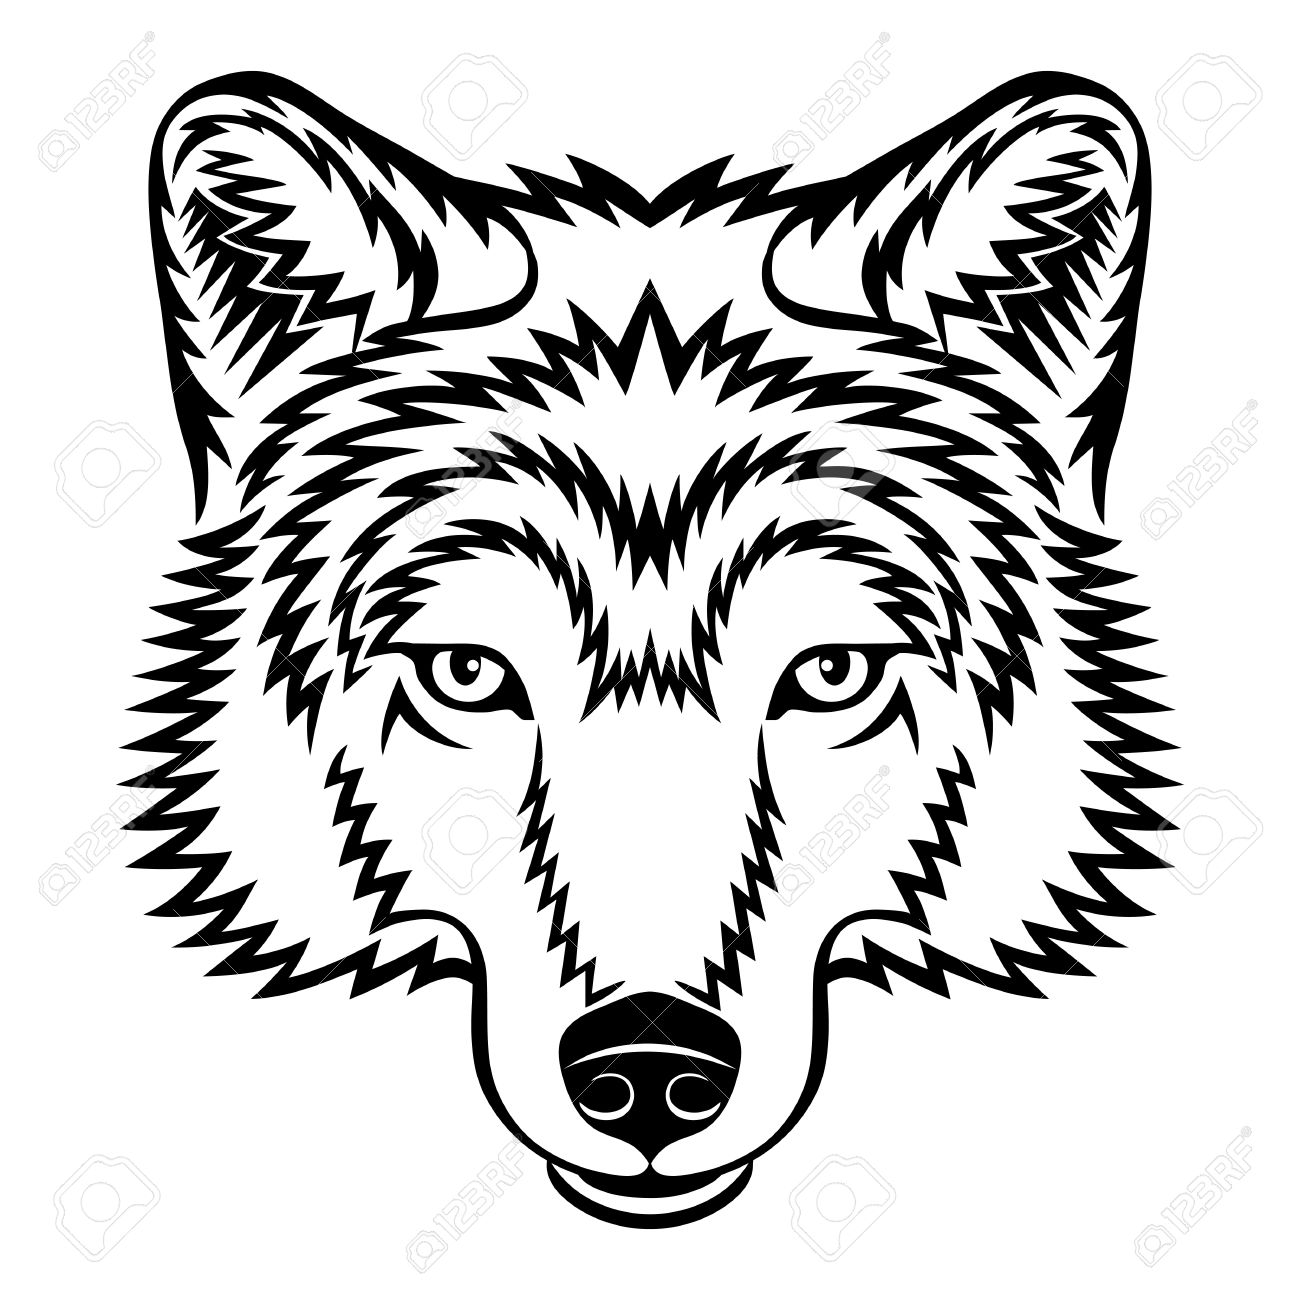 Wolf clipart wolf head. Face free download best